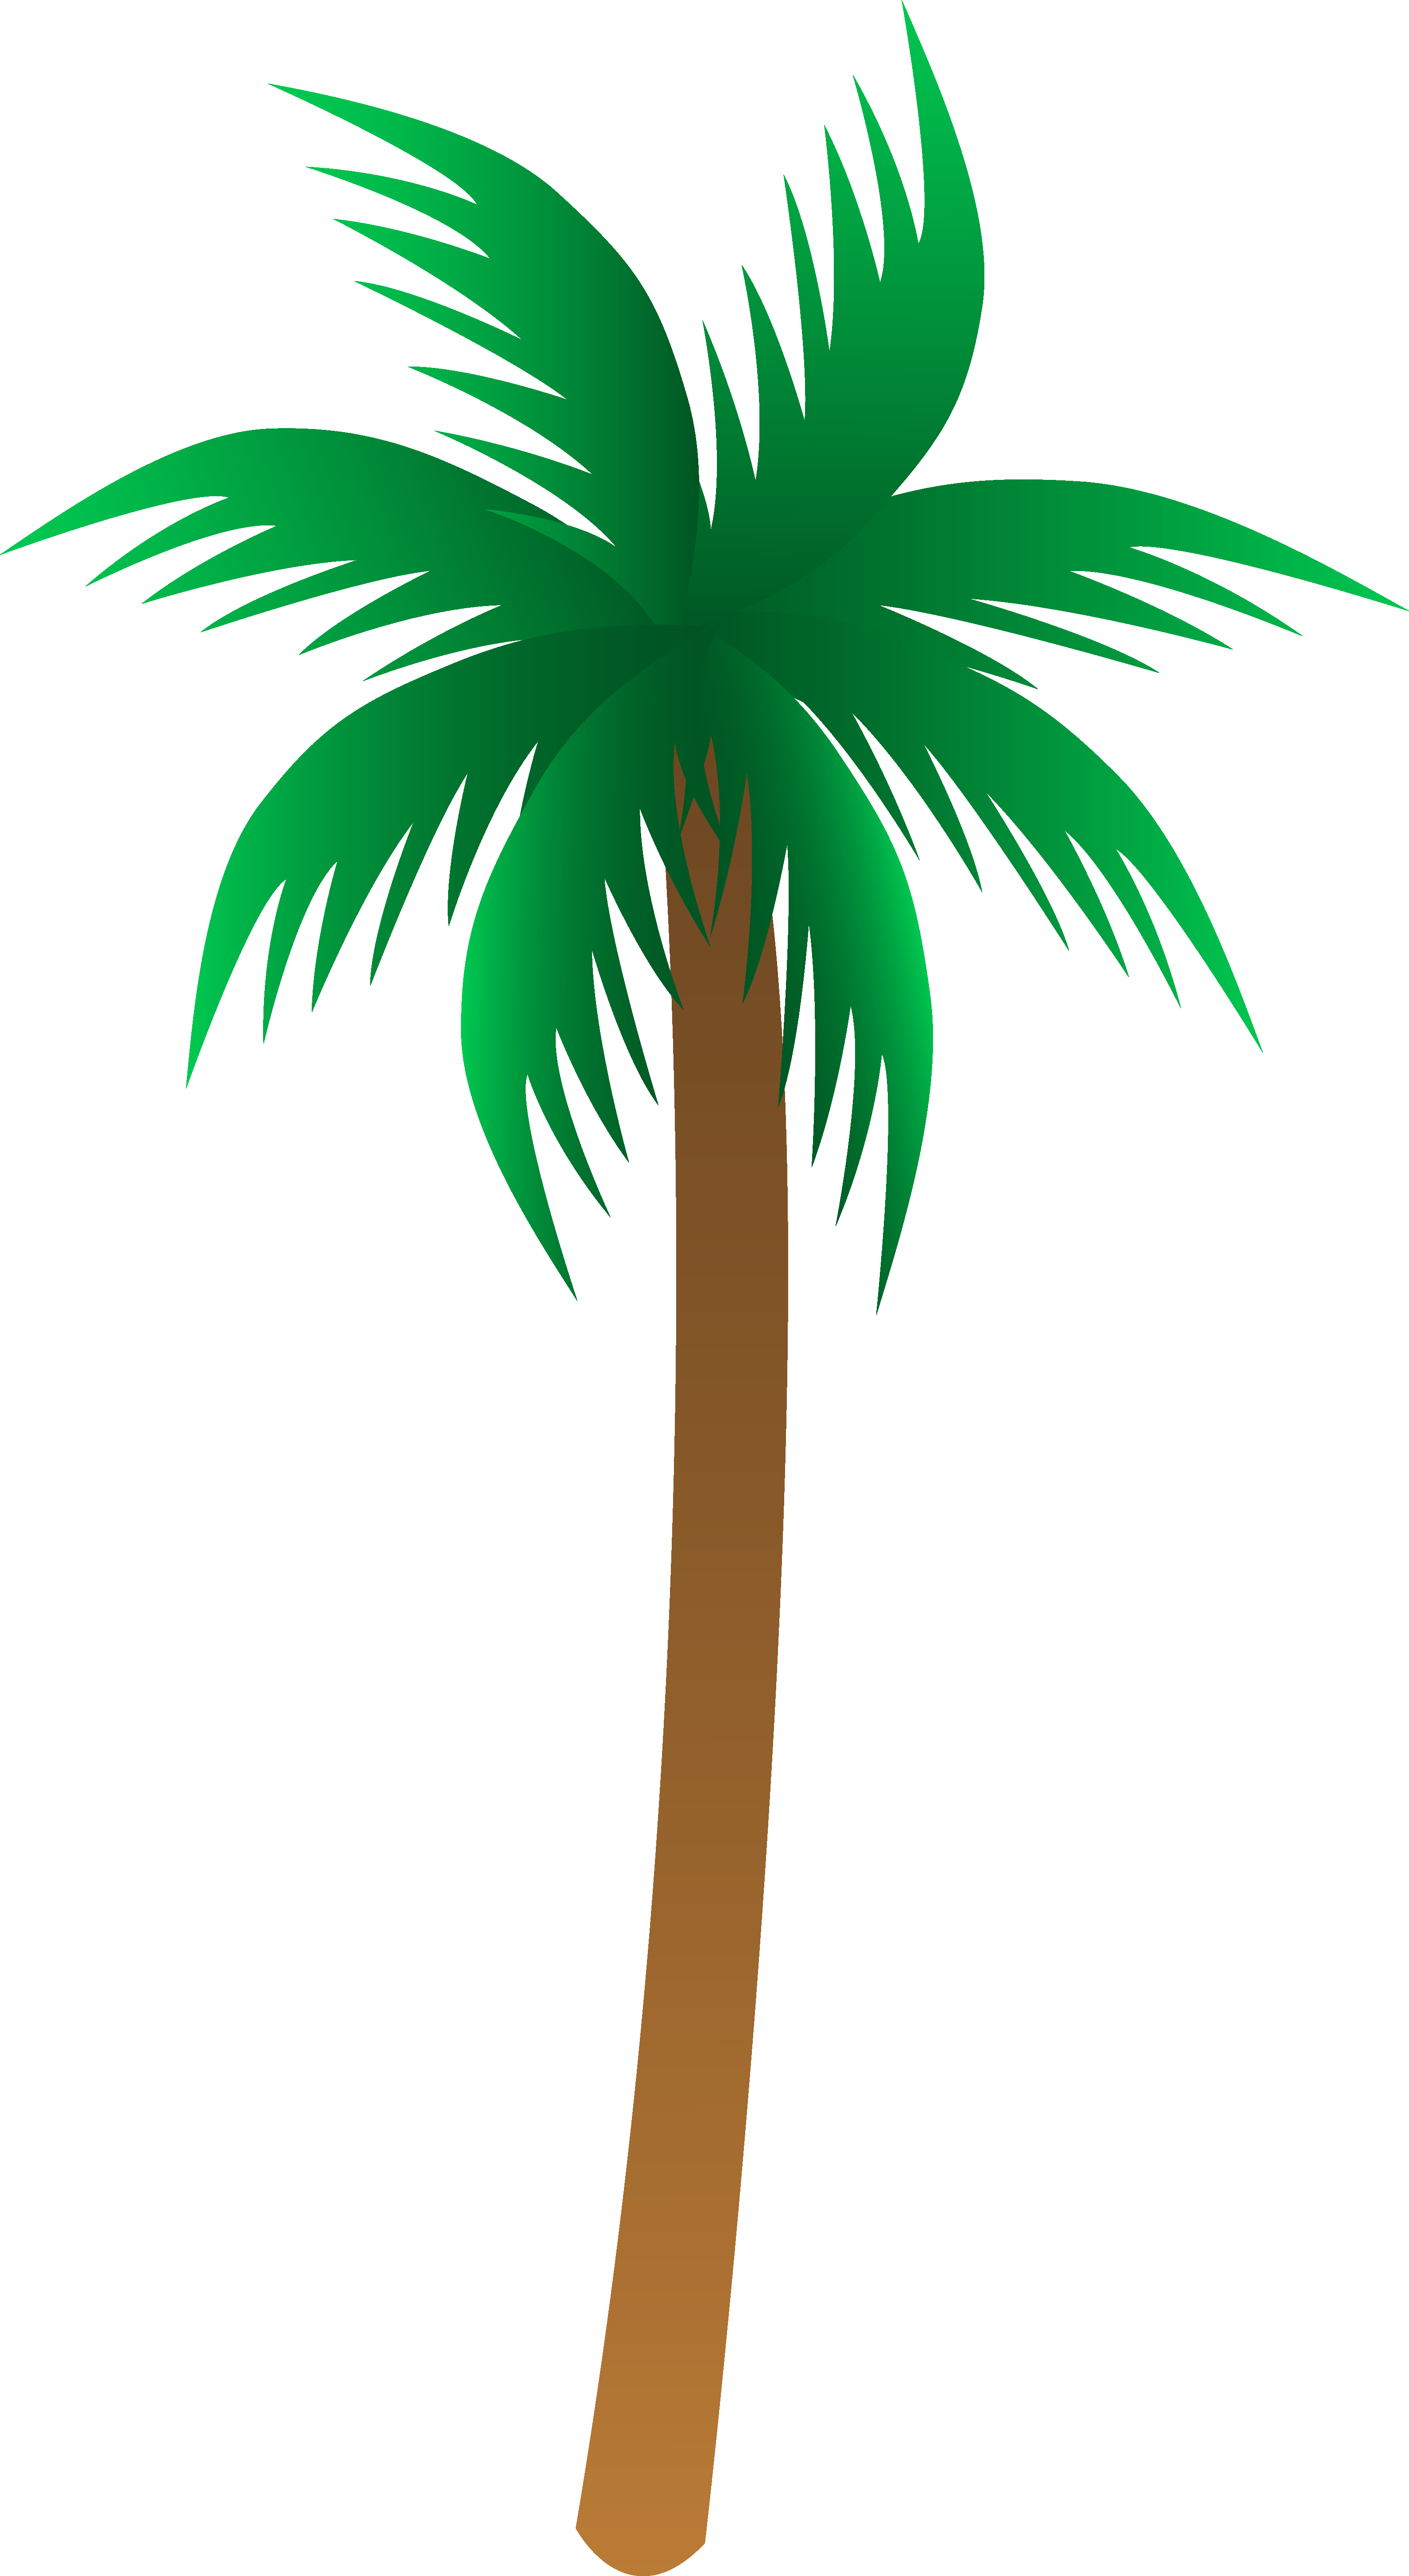 Tropical leaves clipart at. Palm leaf drawing png clip black and white download